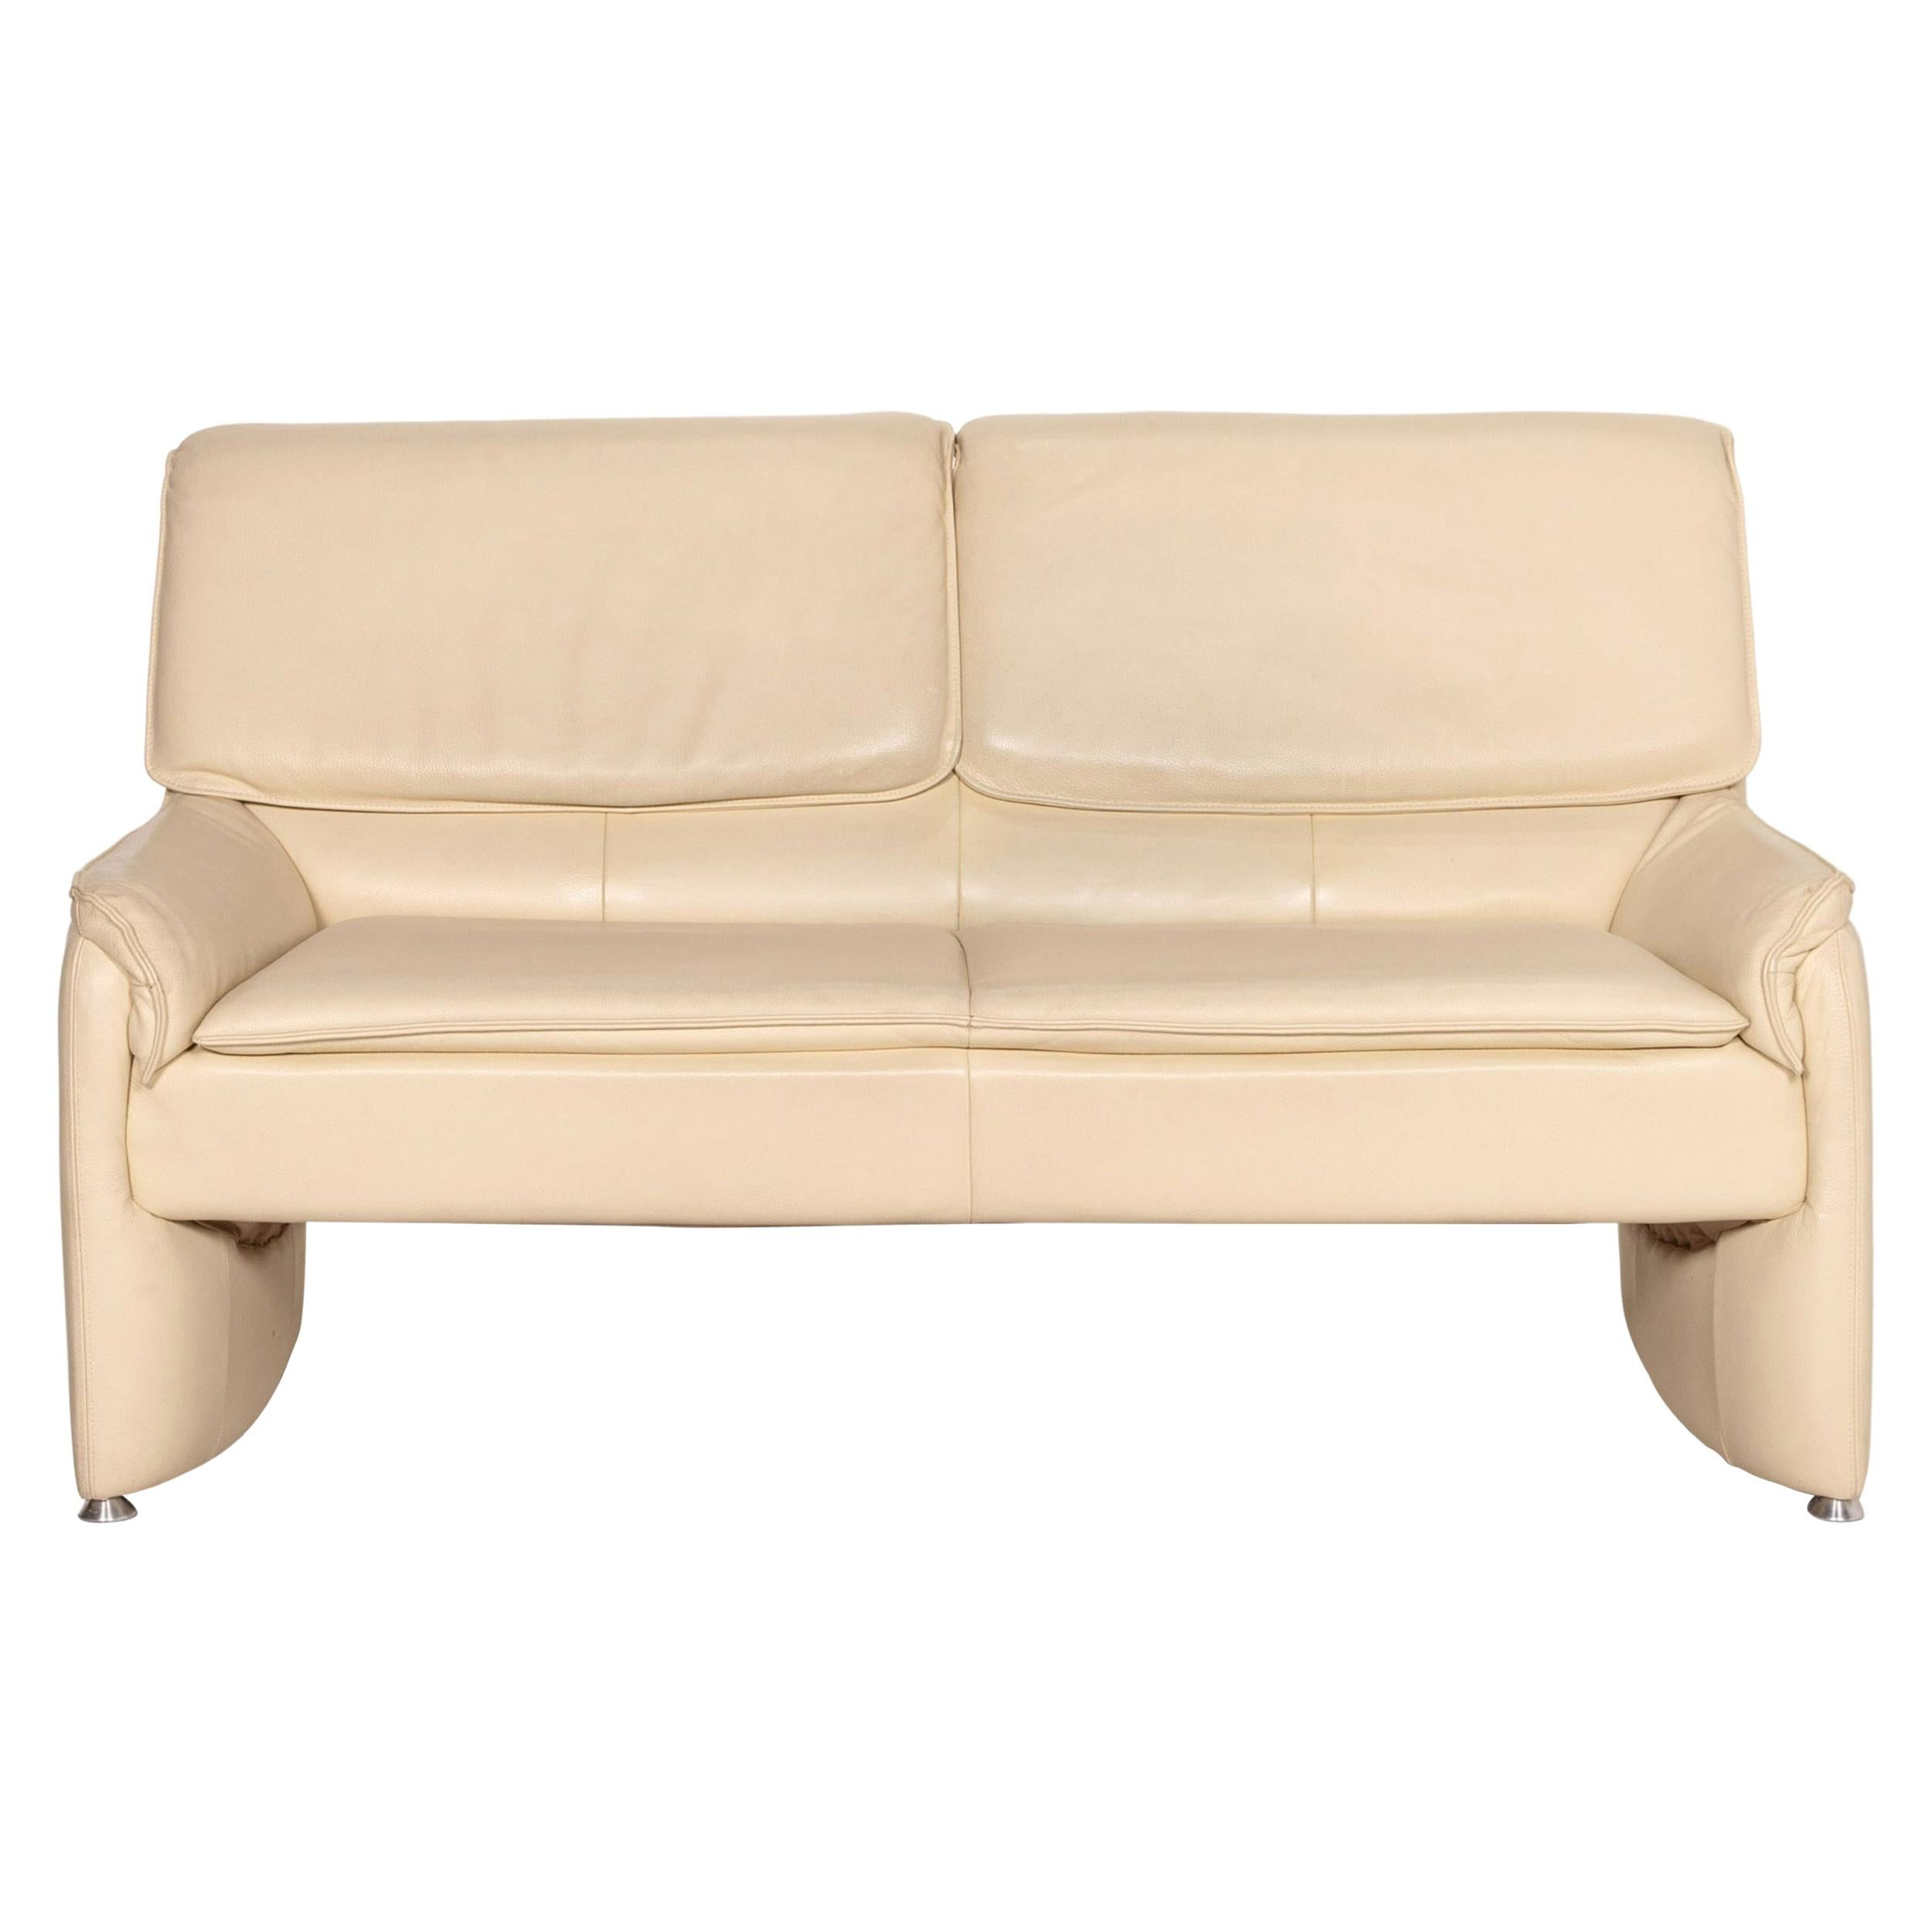 Laauser Leather Sofa Cream Two-Seater Function Couch